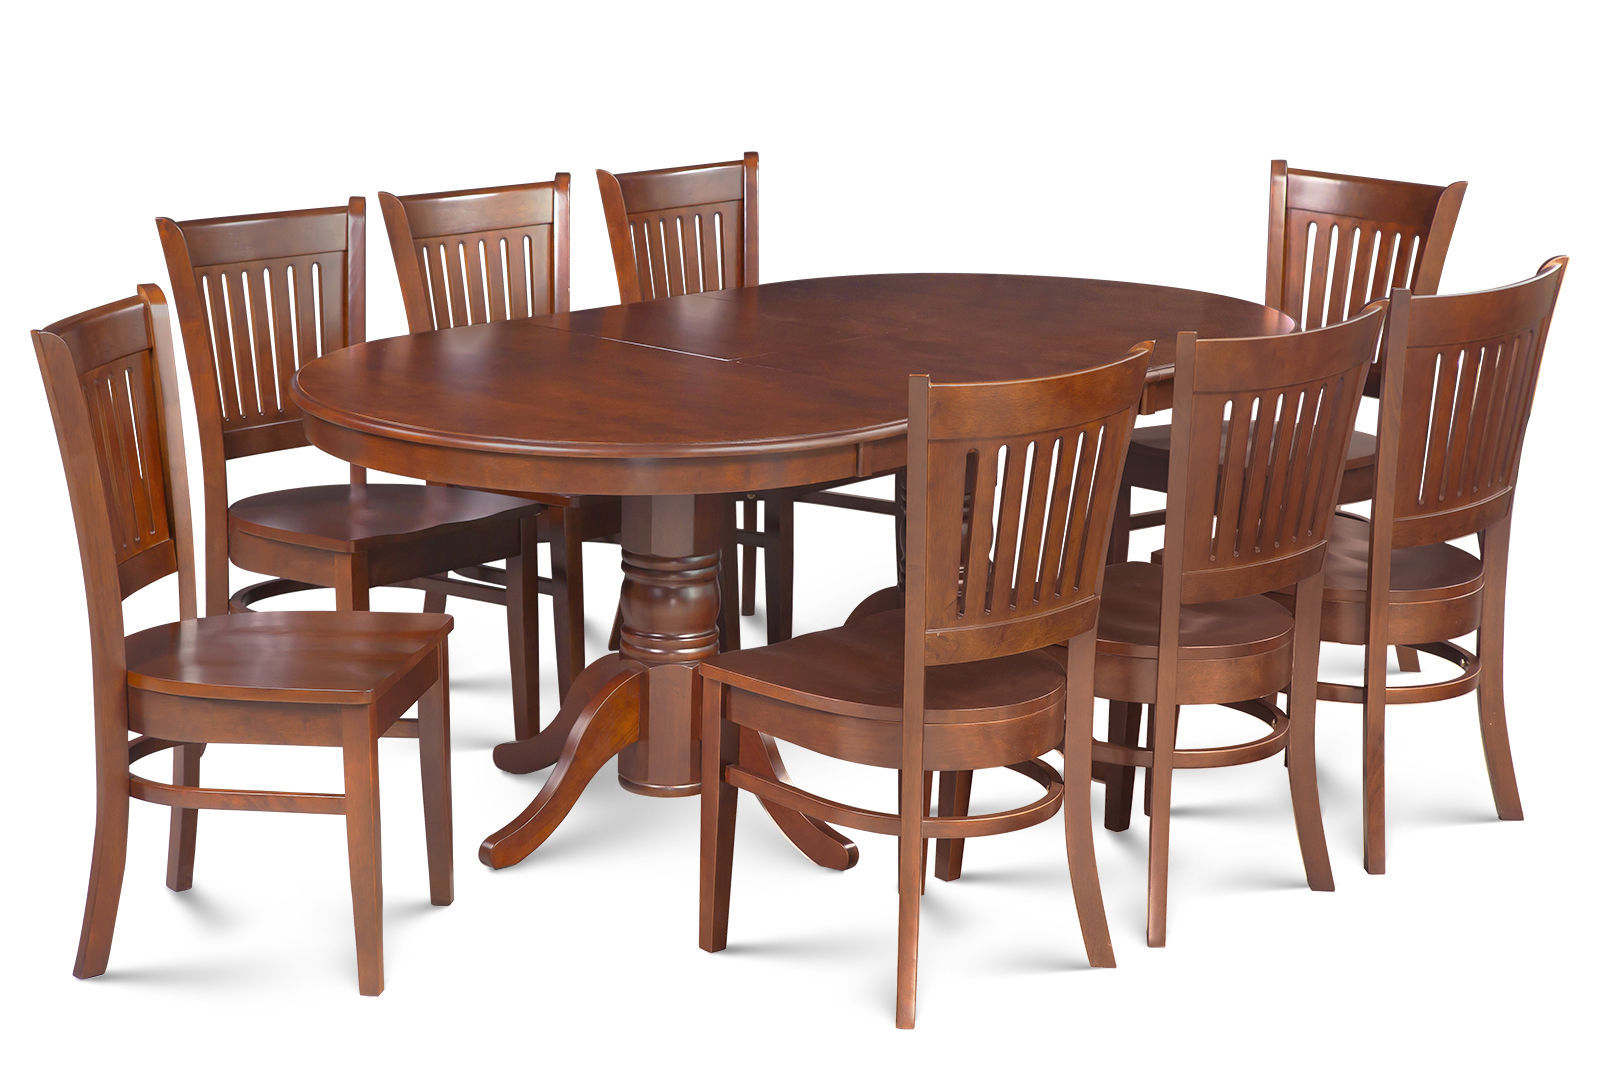 "SOMERVILLE DINETTE DINING ROOM TABLE SET 42""X78"" W. WOODEN SEATS IN ESPRESSO"